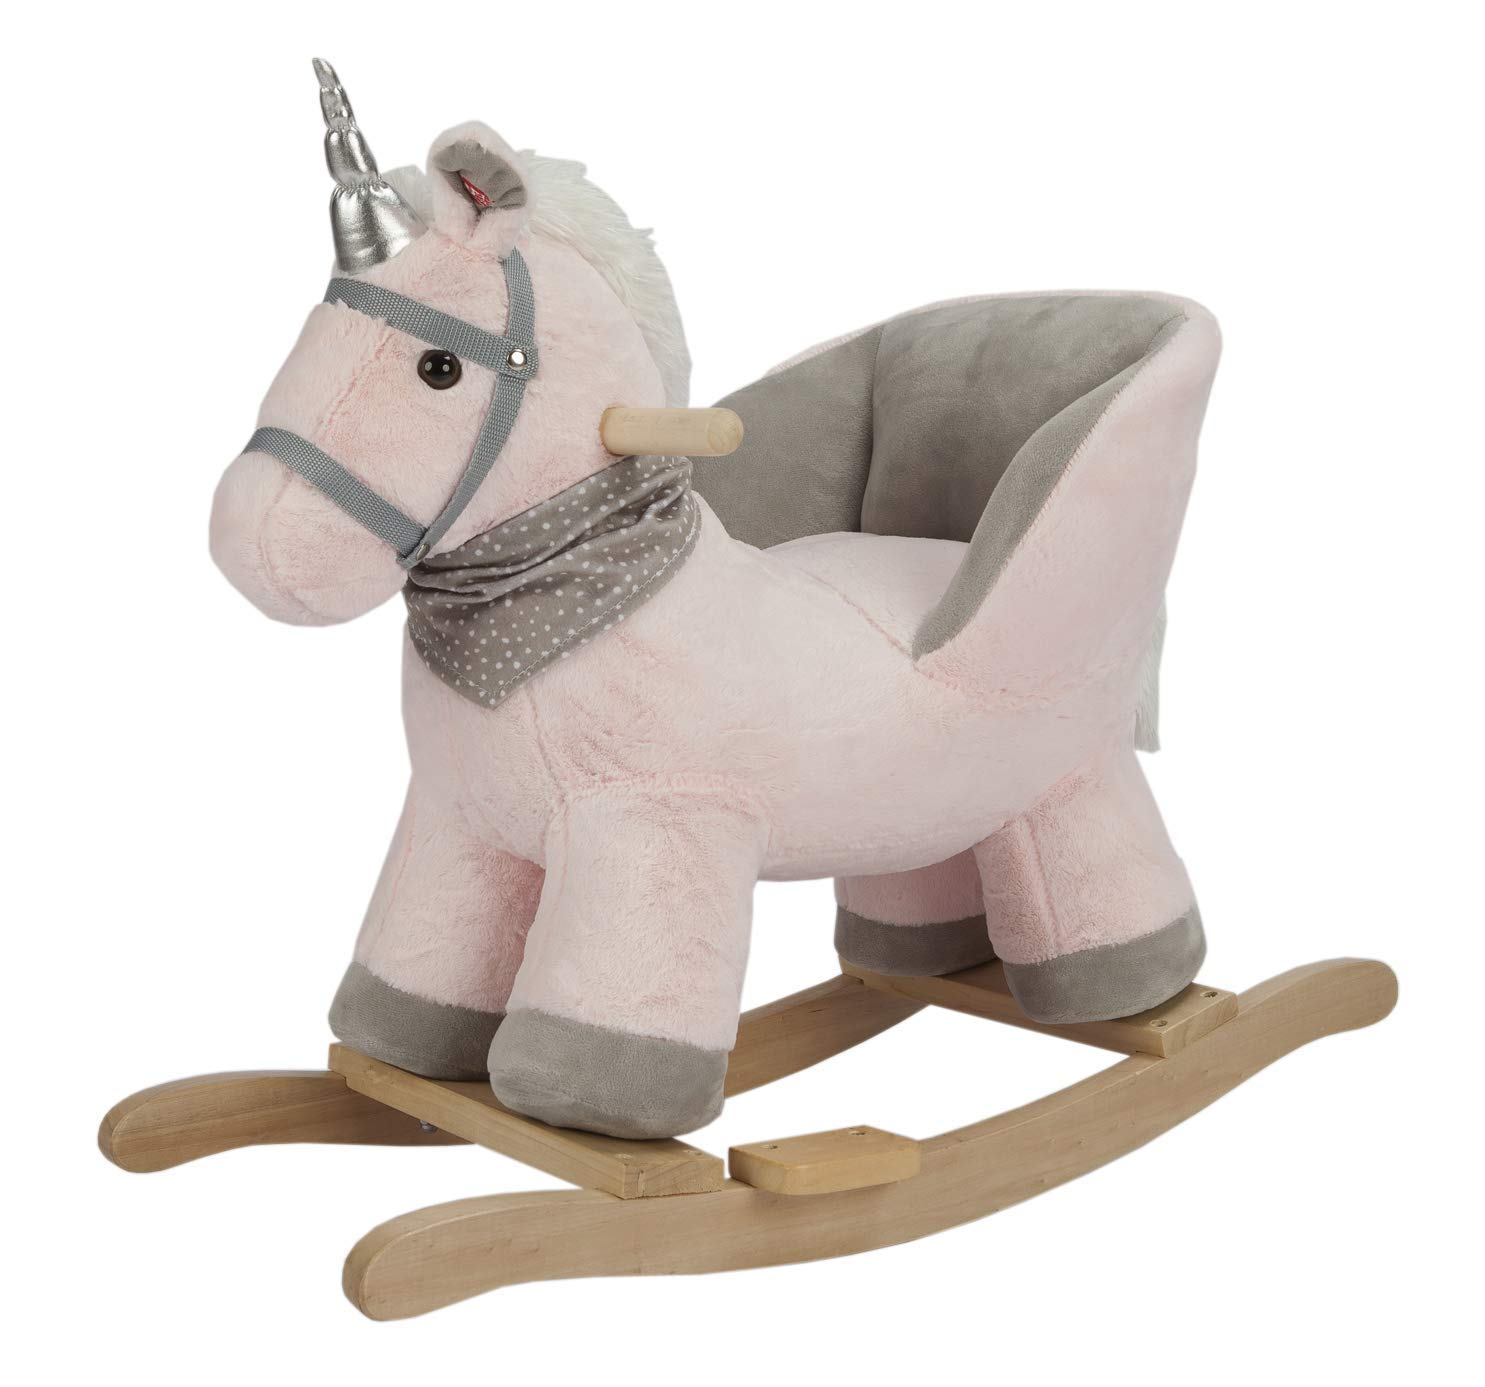 ROCK MY BABY Pink Unicorn with Chair,Plush Stuffed Rocking Animals,Wooden Rocking Toy Horse/Baby Rocker/Animal Ride on,Home Decor,for Girls and Boys,(Pink Unicorn)